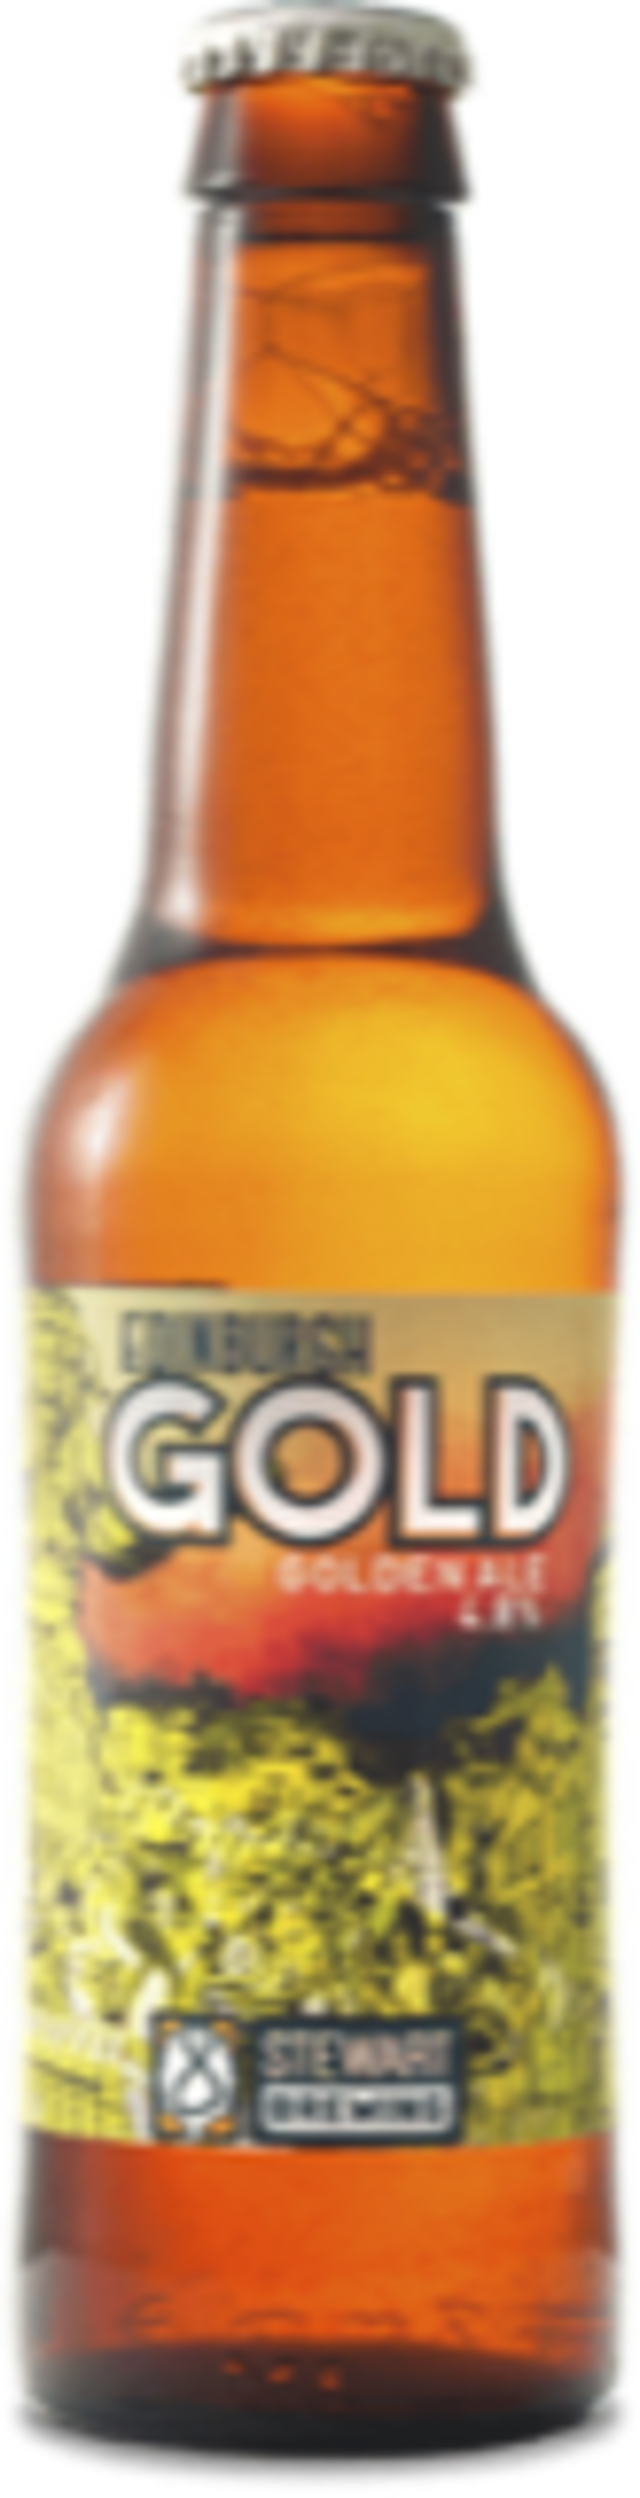 Edinburgh Gold(Golden Ale)